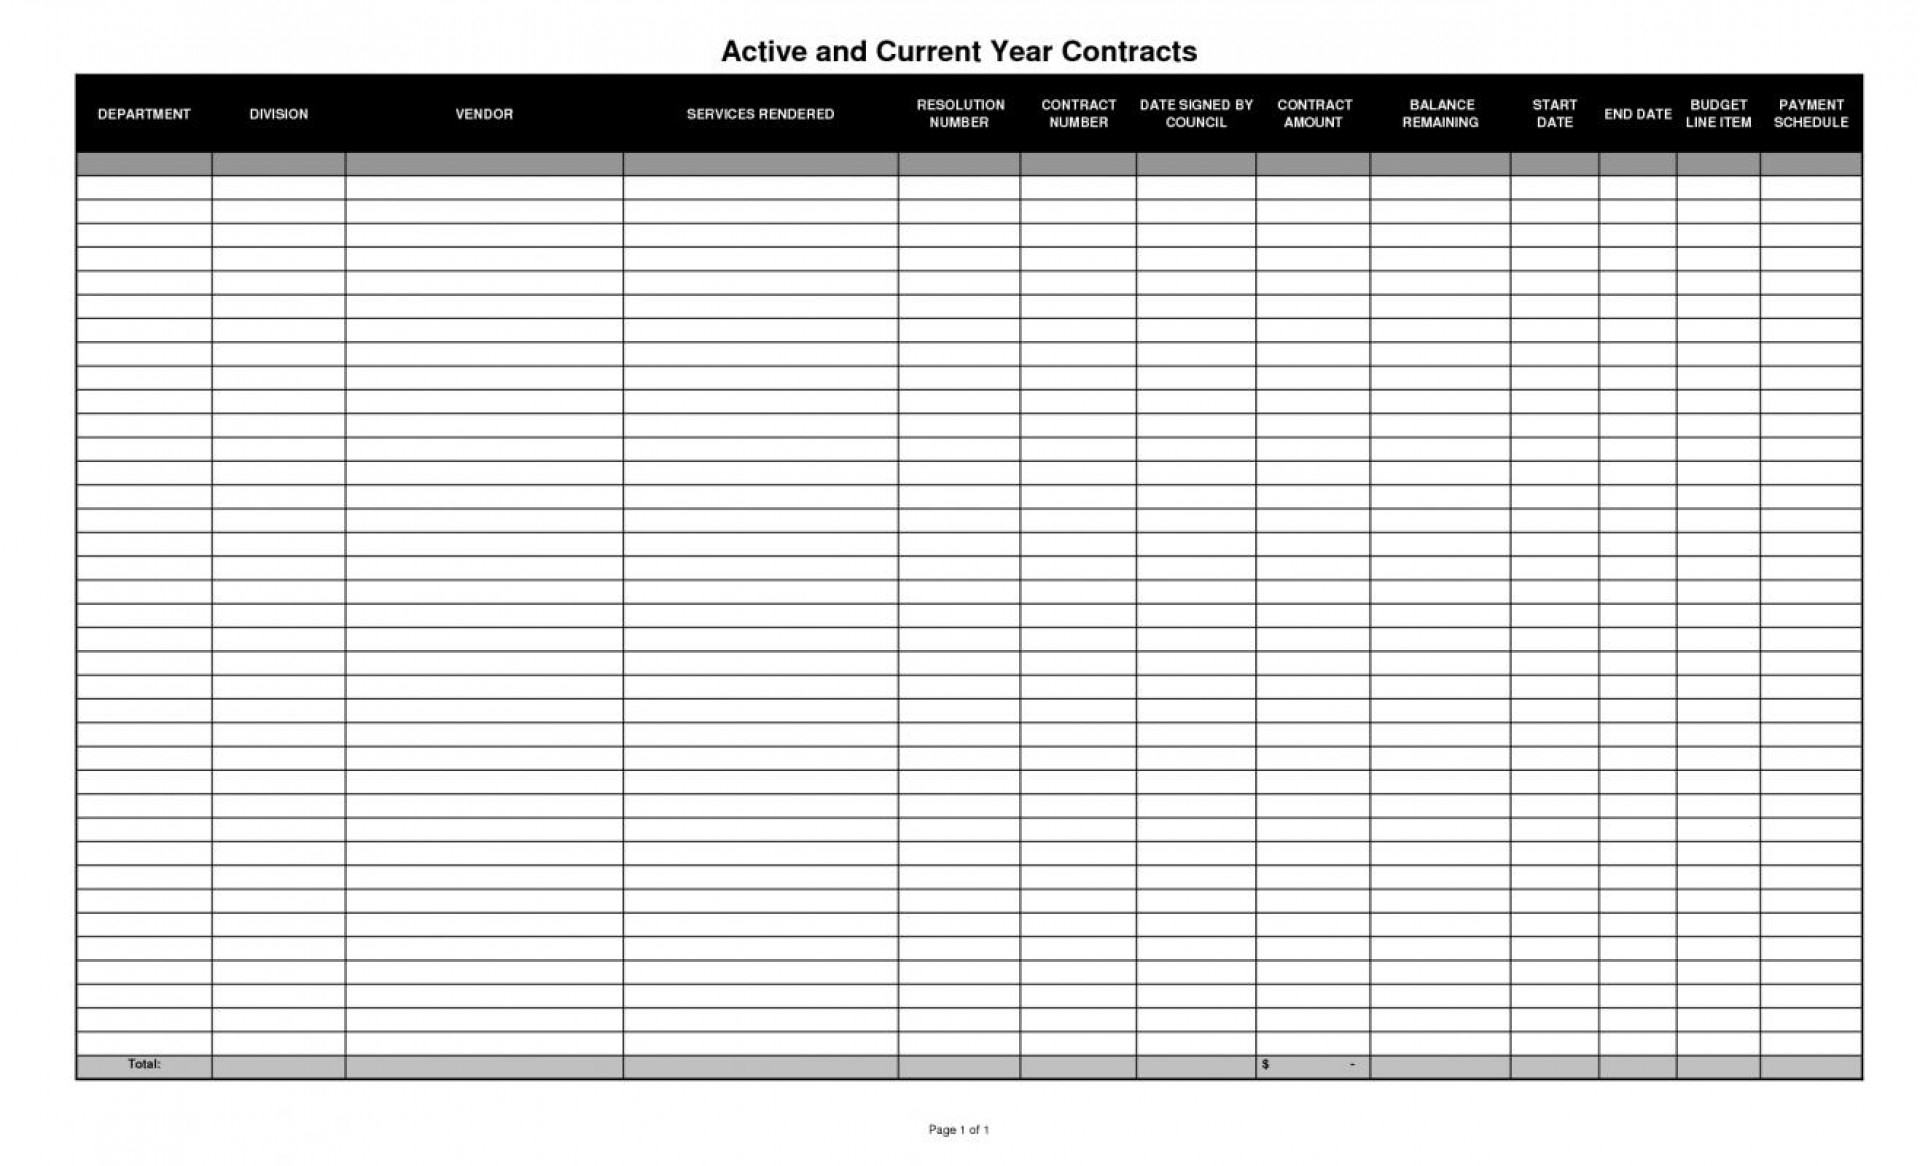 Blank Spreadsheet Template Pdf Regarding 005 Free Spreadsheet Template Blank Spreadsheets Printable Pdf Ideas